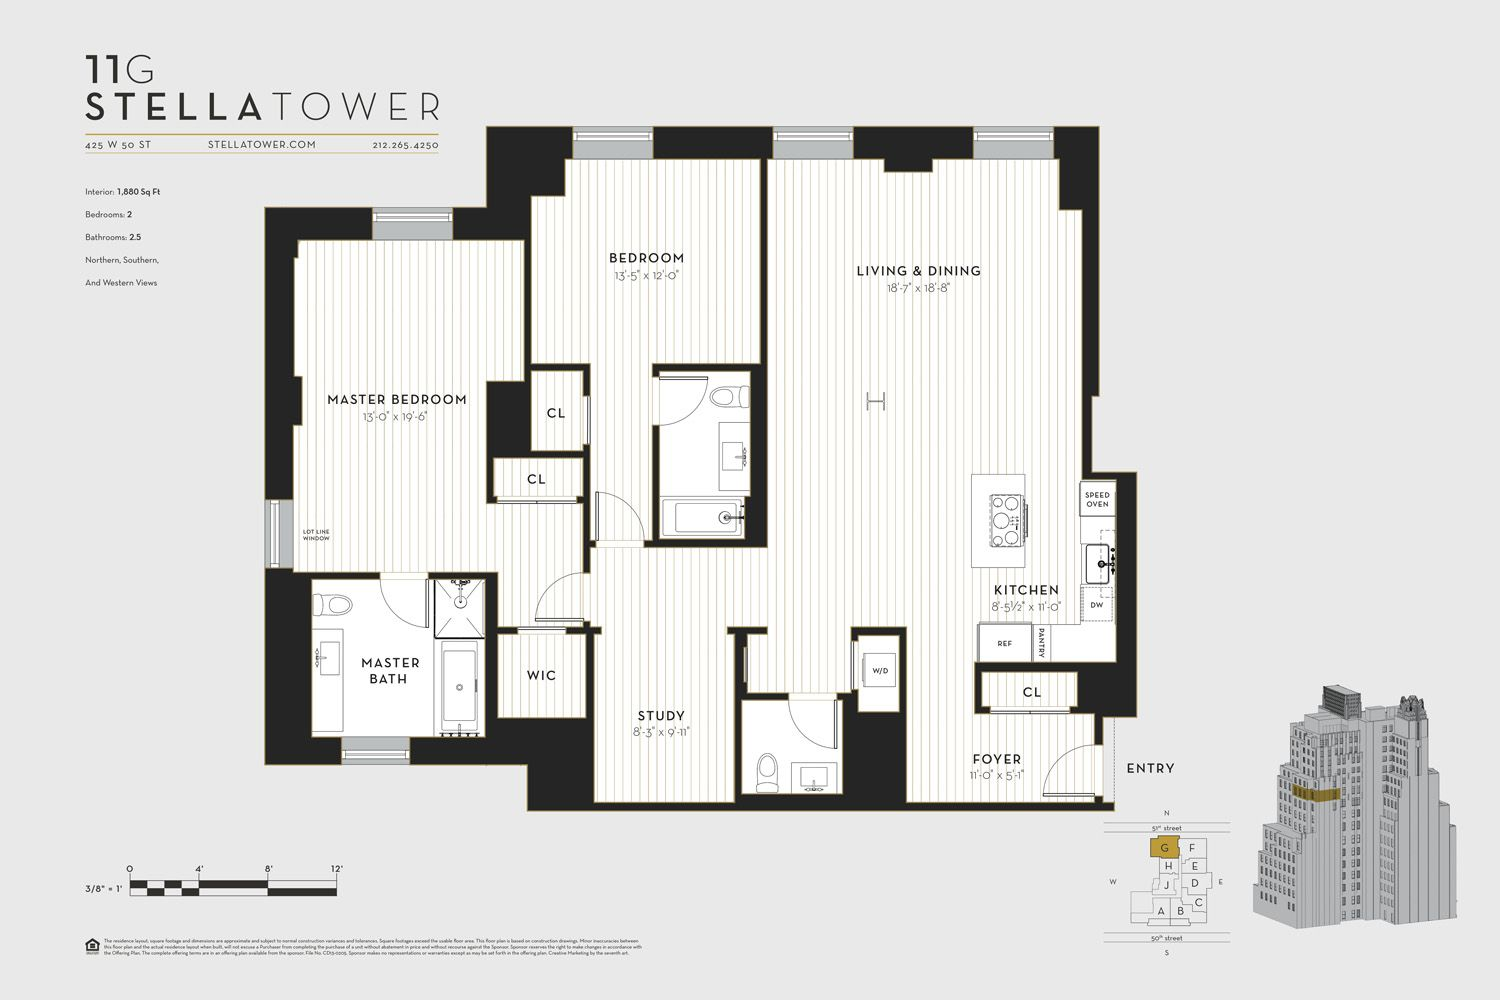 Stella Tower At 425 West 50th Street Jds Development Group Floor Plans Entry Foyer Tower